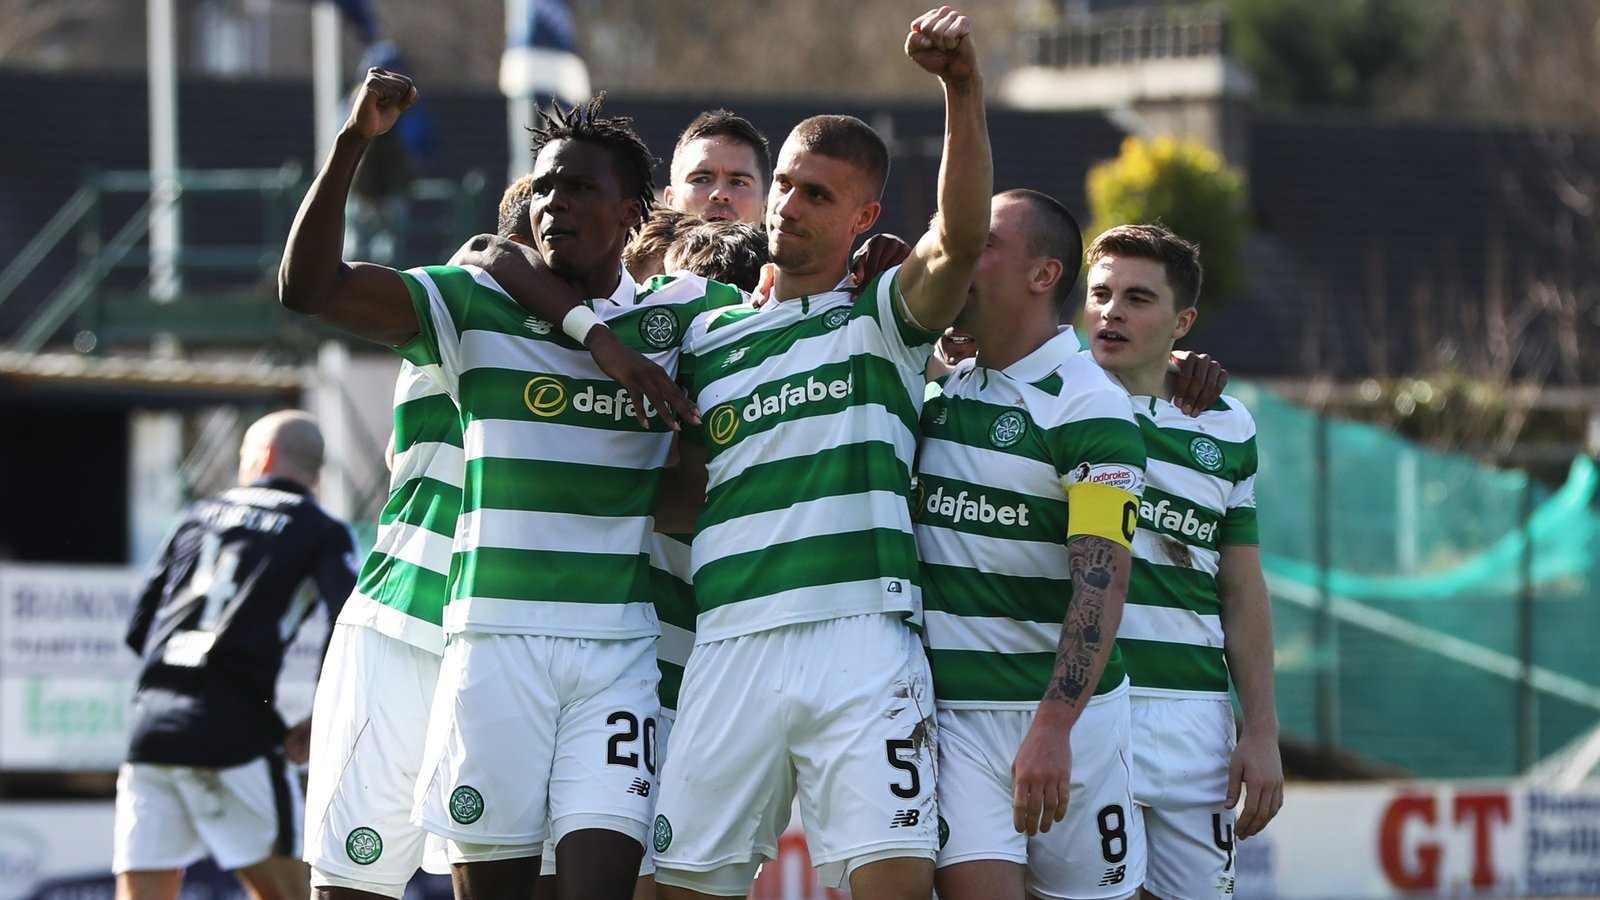 Celtic on brink of title after Dundee victory